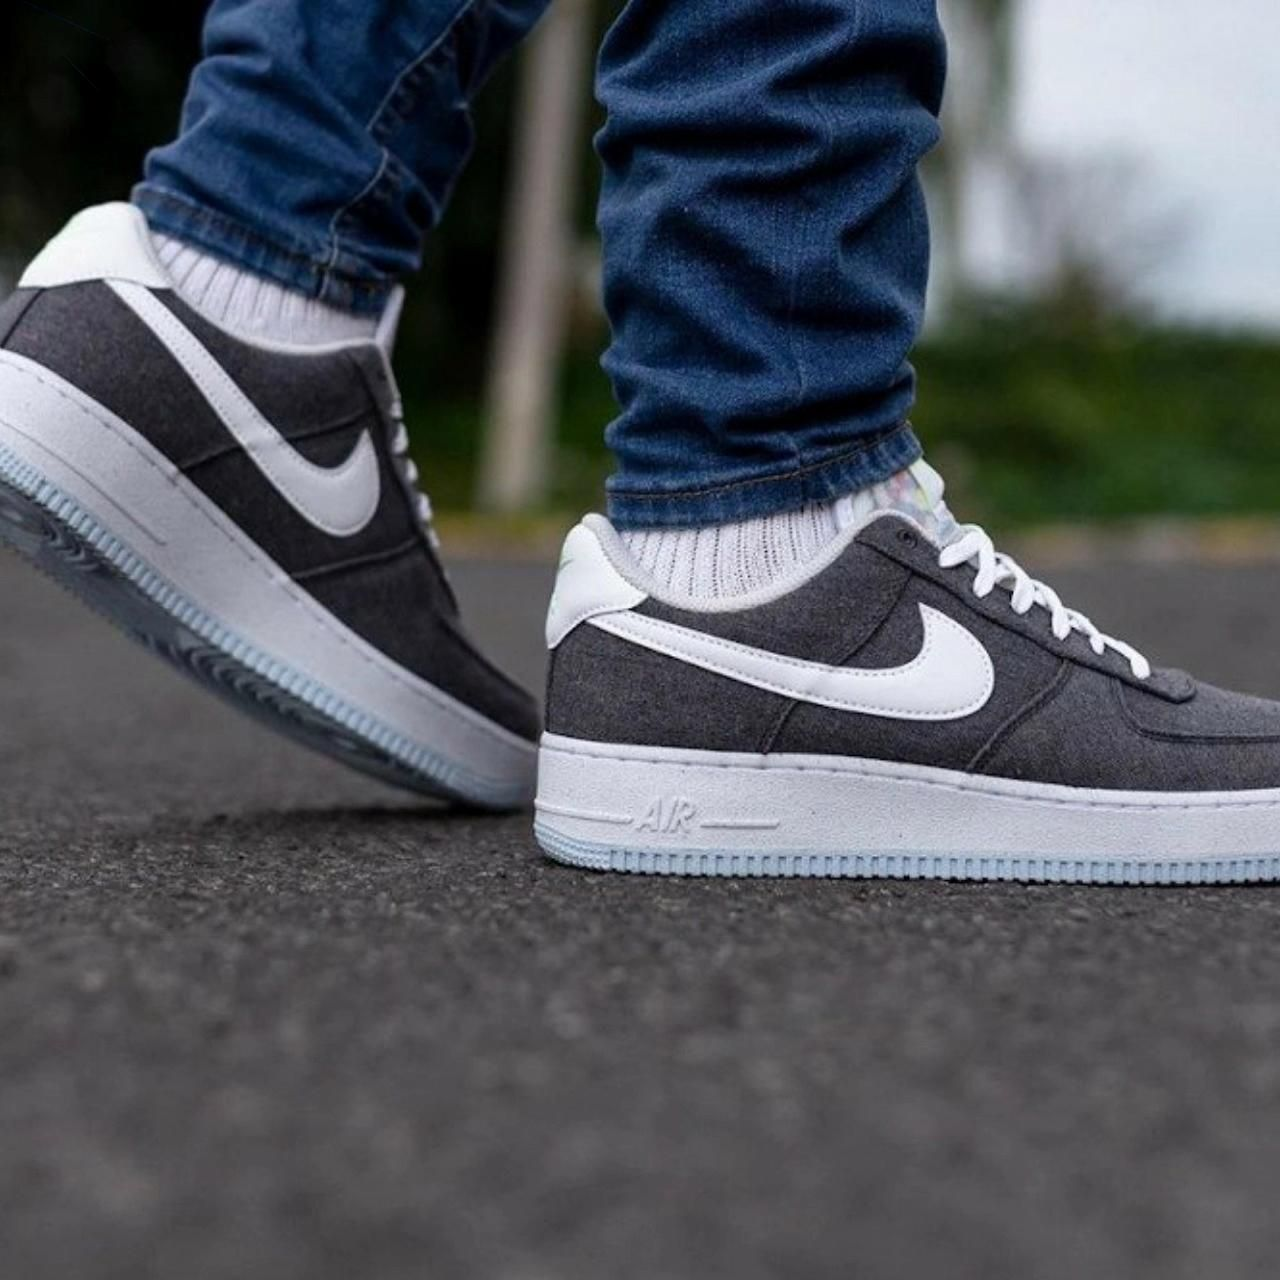 Nike #Air #Force 1 07 #Low #Iron #Grey #Recycled #Canvas #Pack ...